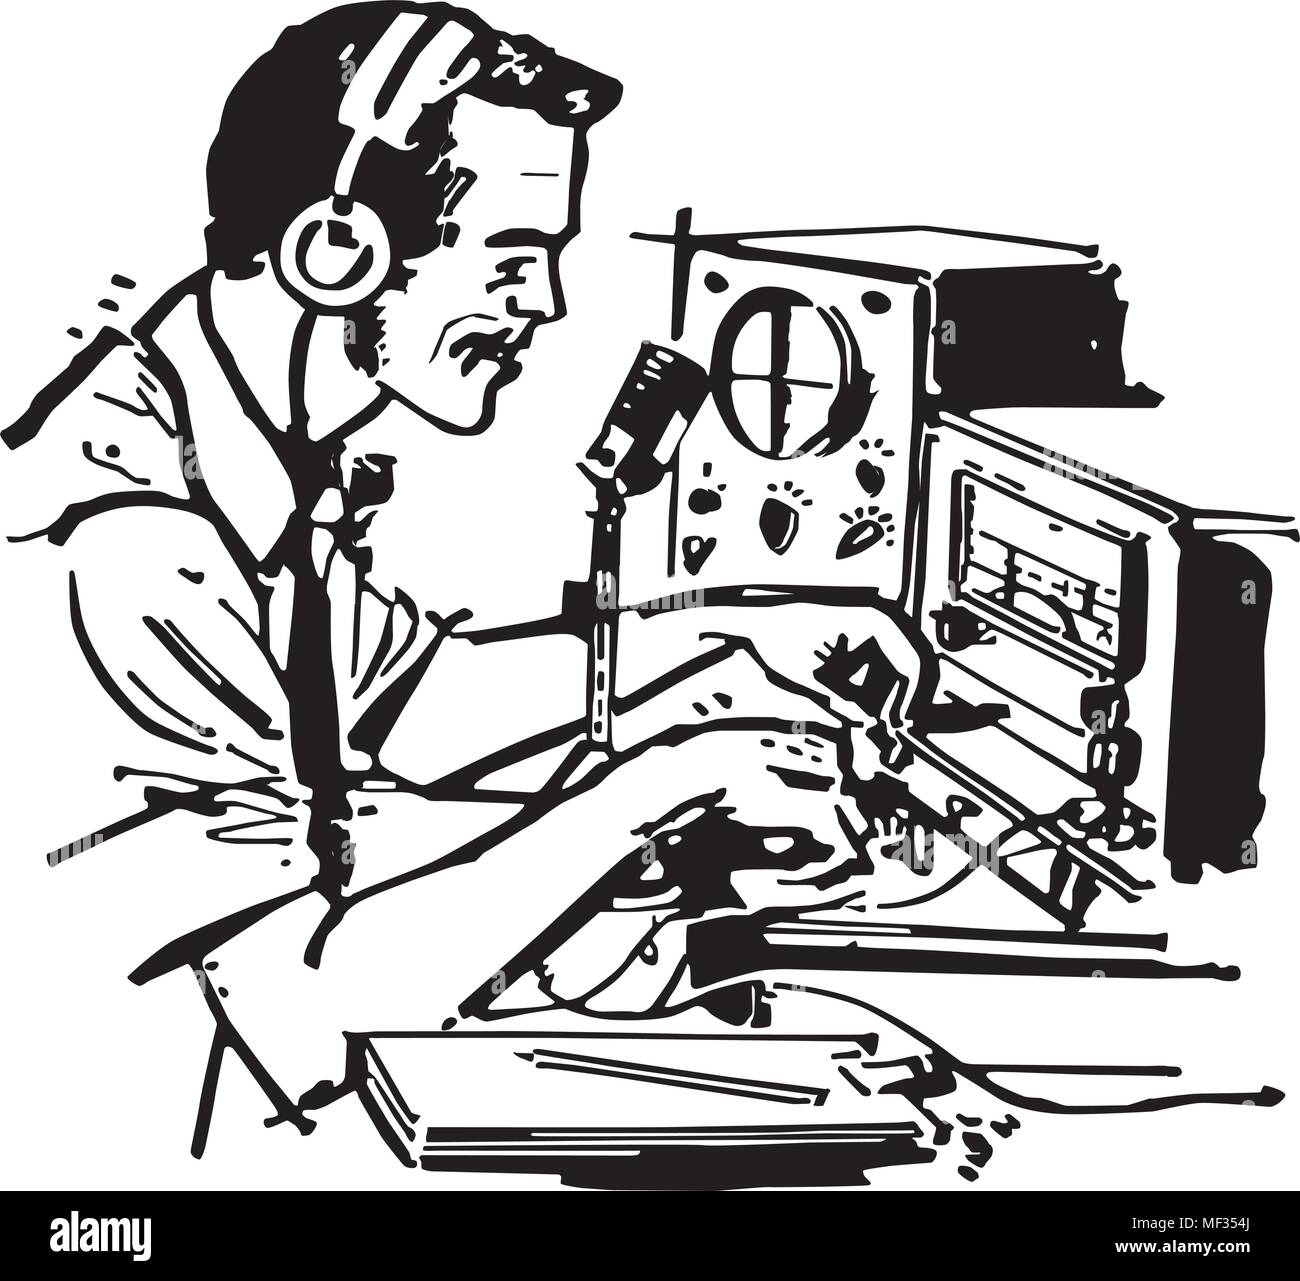 Ham Radio Operator - Retro Clipart Illustration Stock Vector